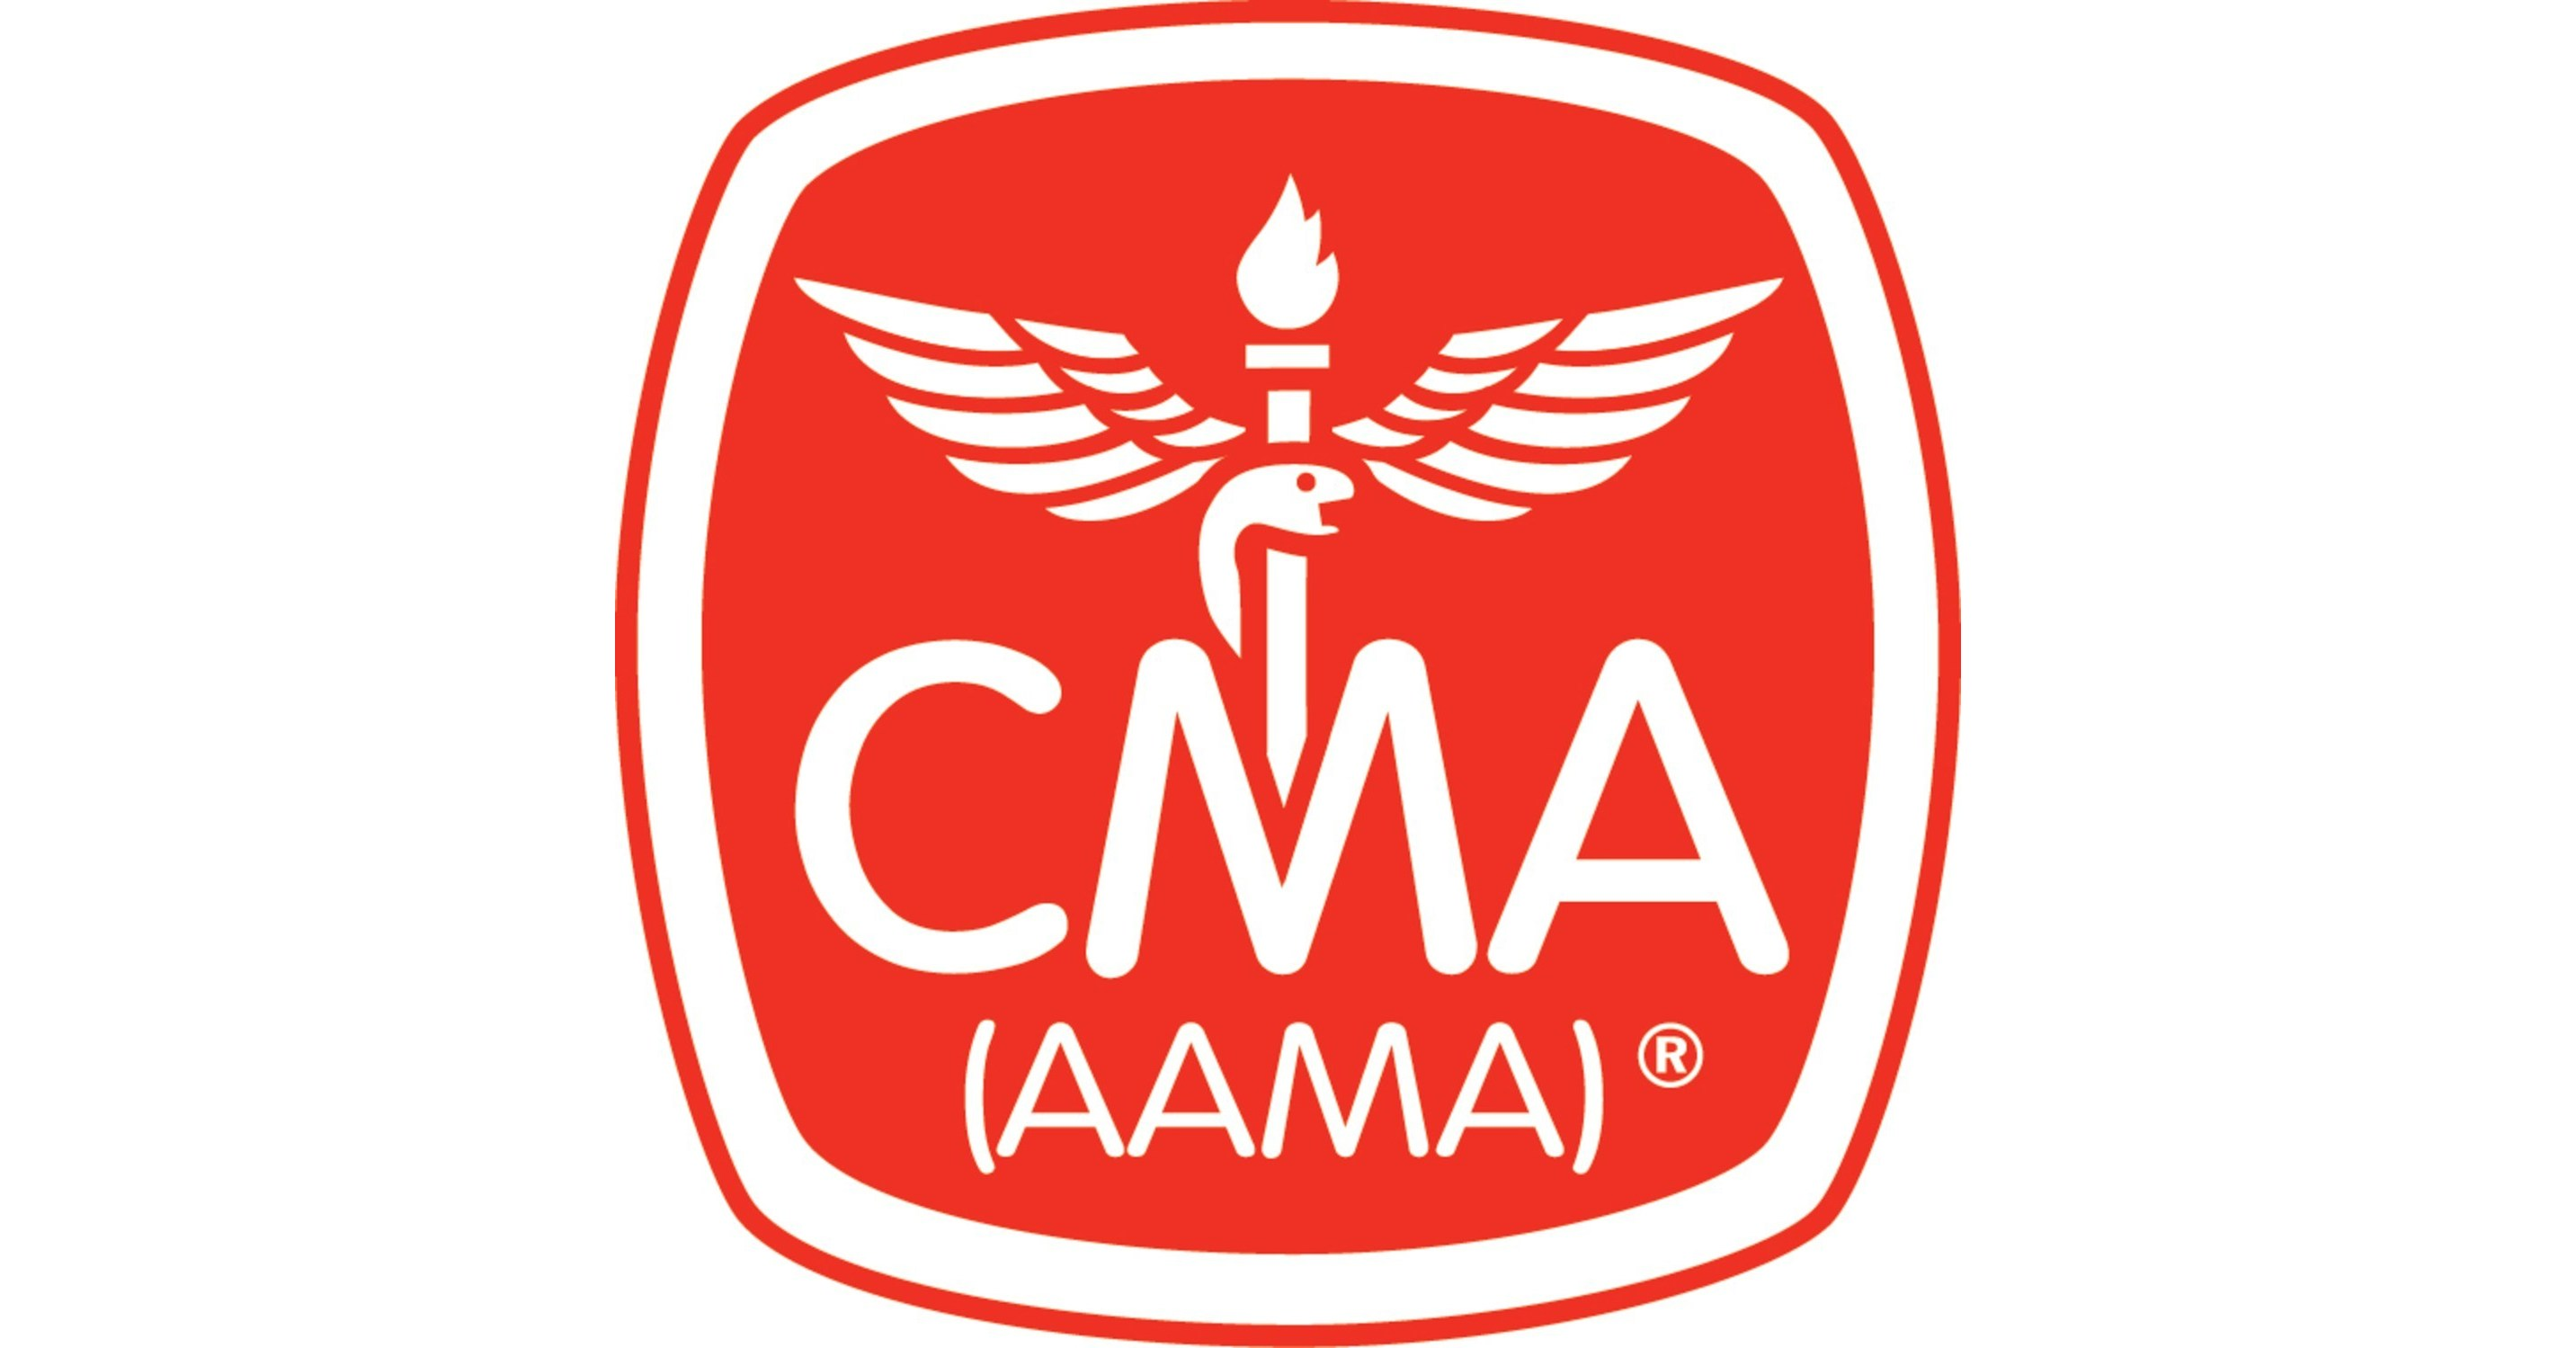 american association of medical assistants The cma (aama) credential represents a certified medical assistant (cma) who  has achieved certification through the american association of medical.